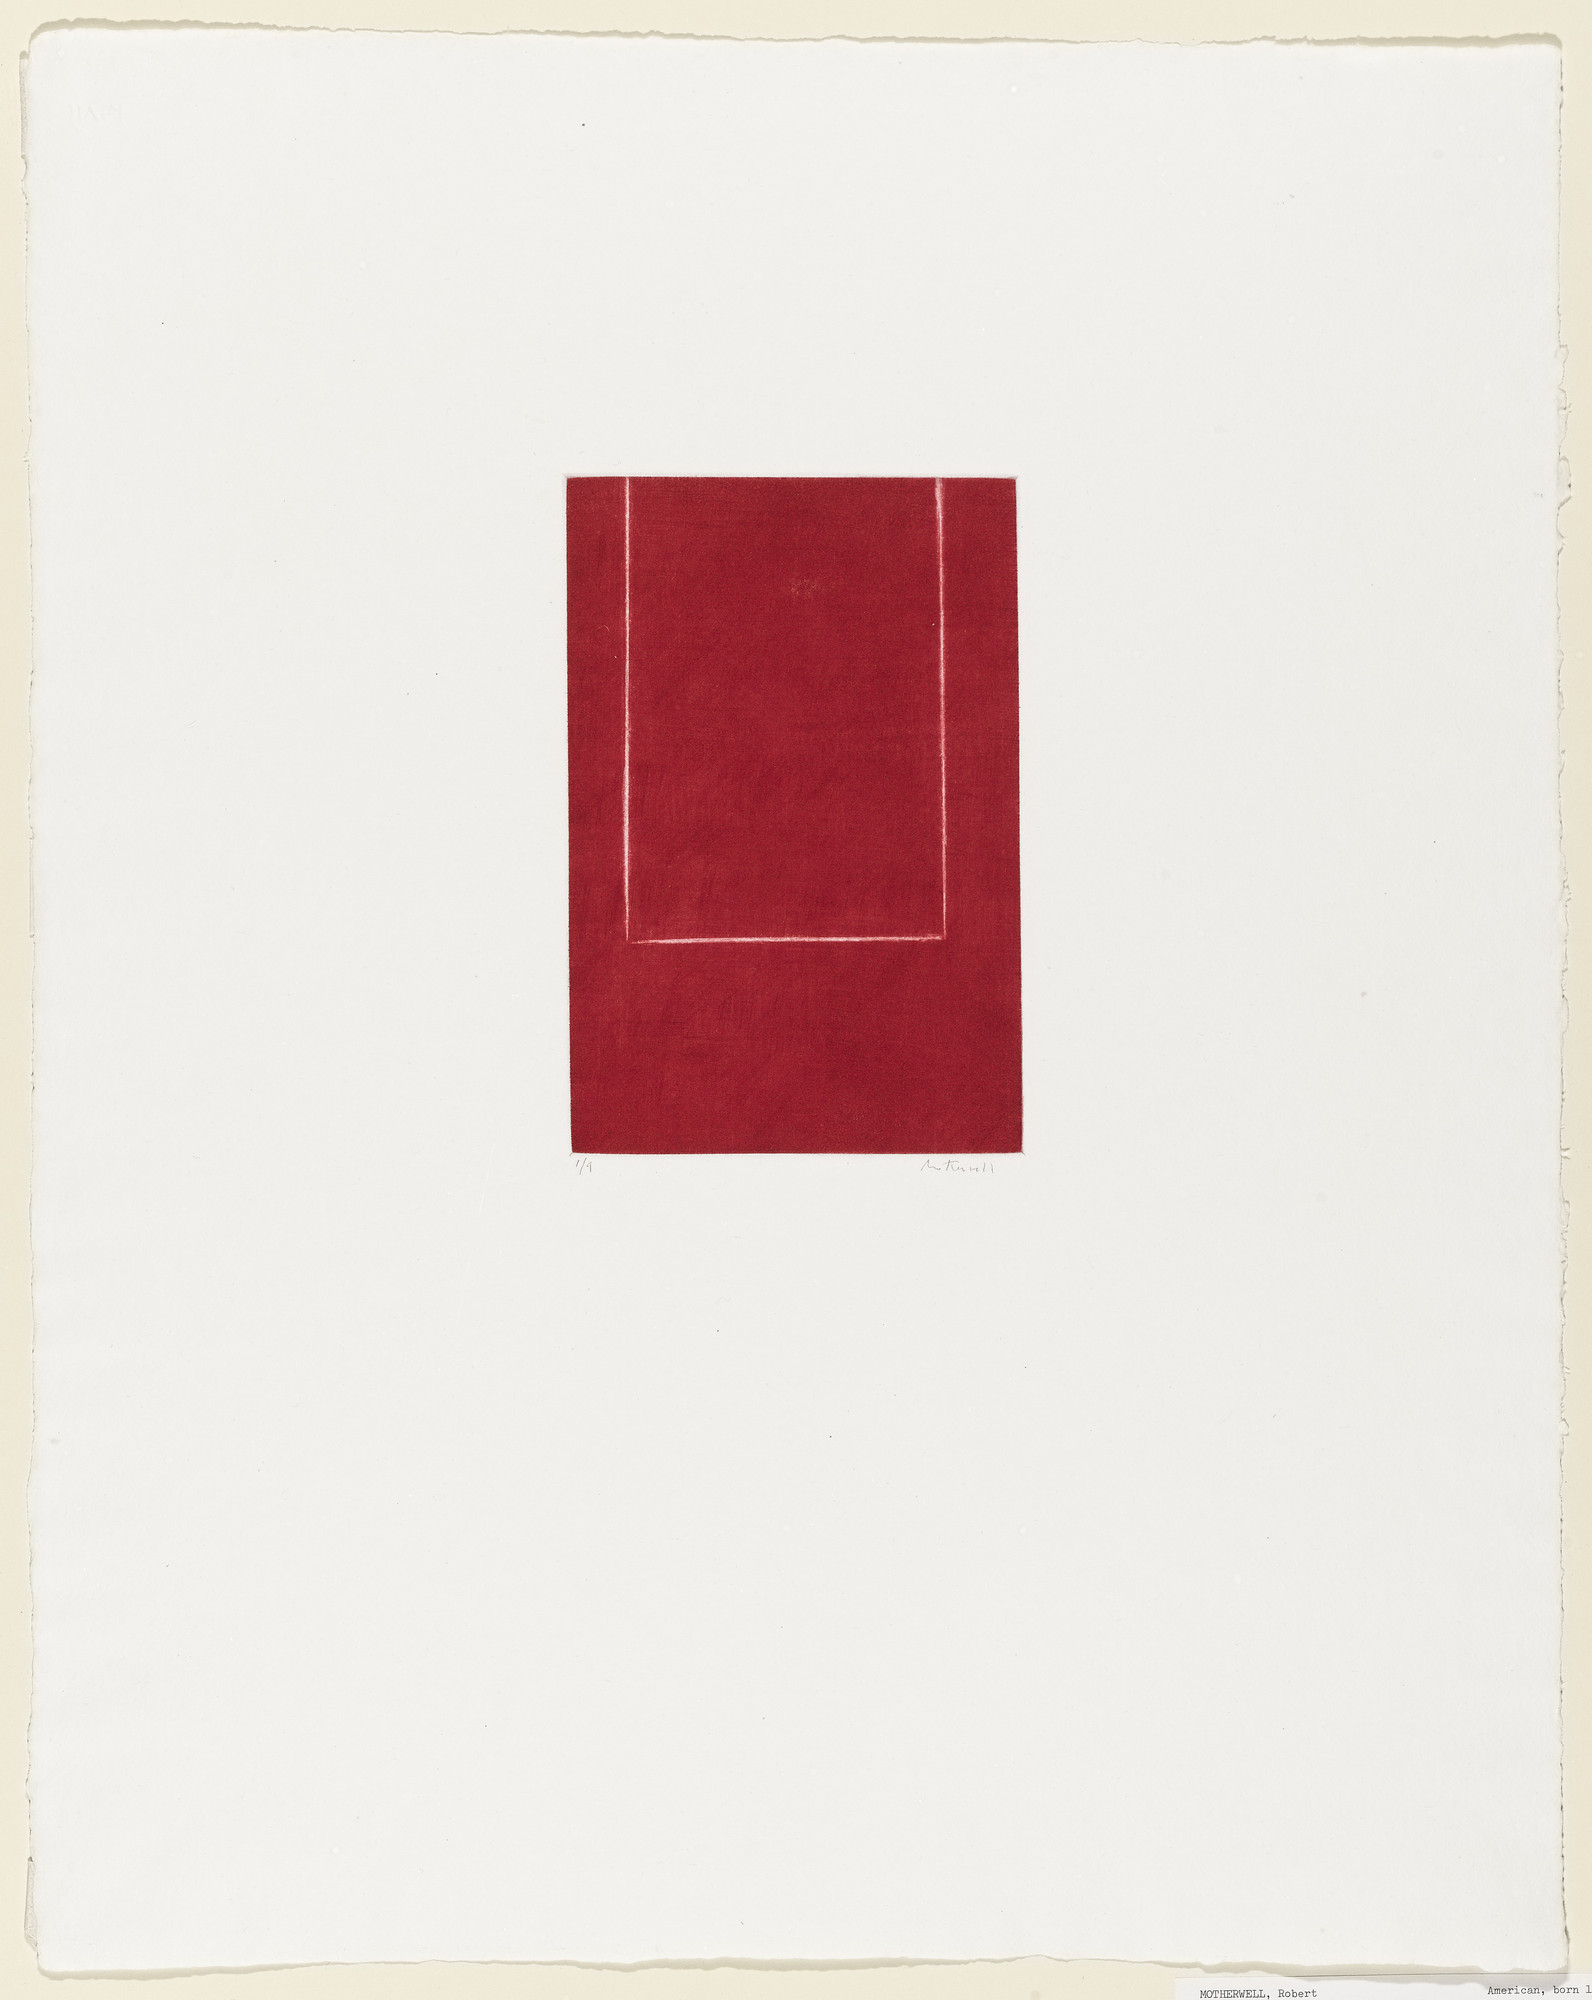 Robert Motherwell. Mezzotint in Crimson. 1968-69